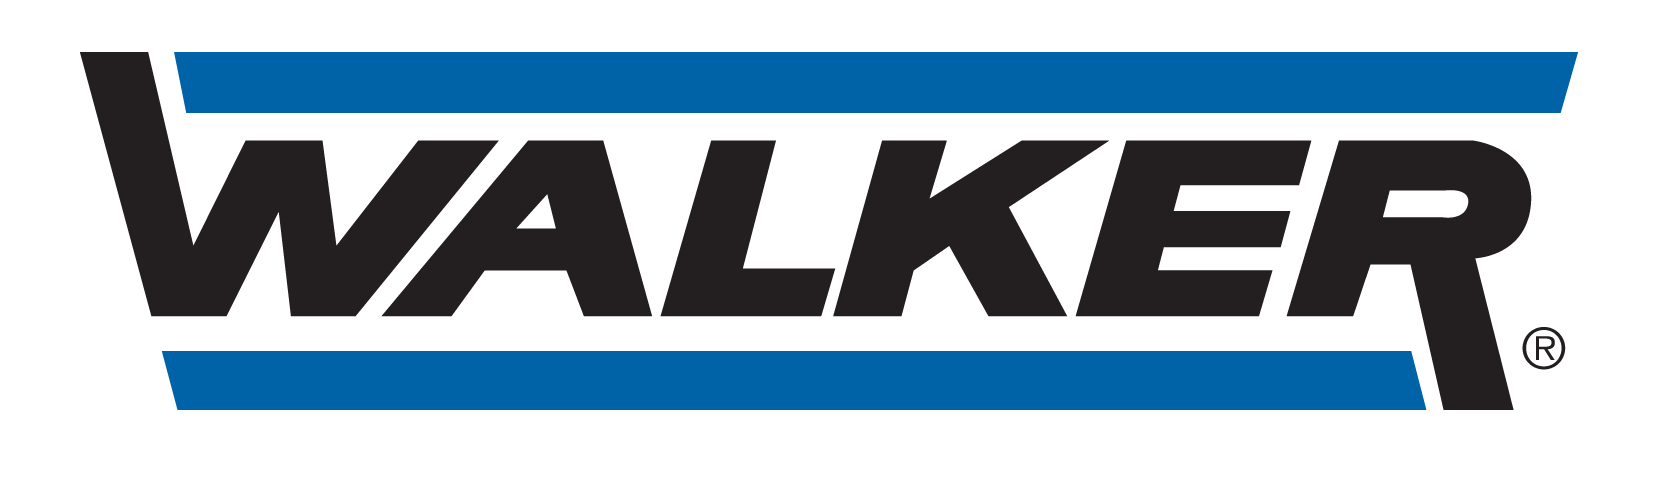 GARAGE ALLAIN - logo Walker